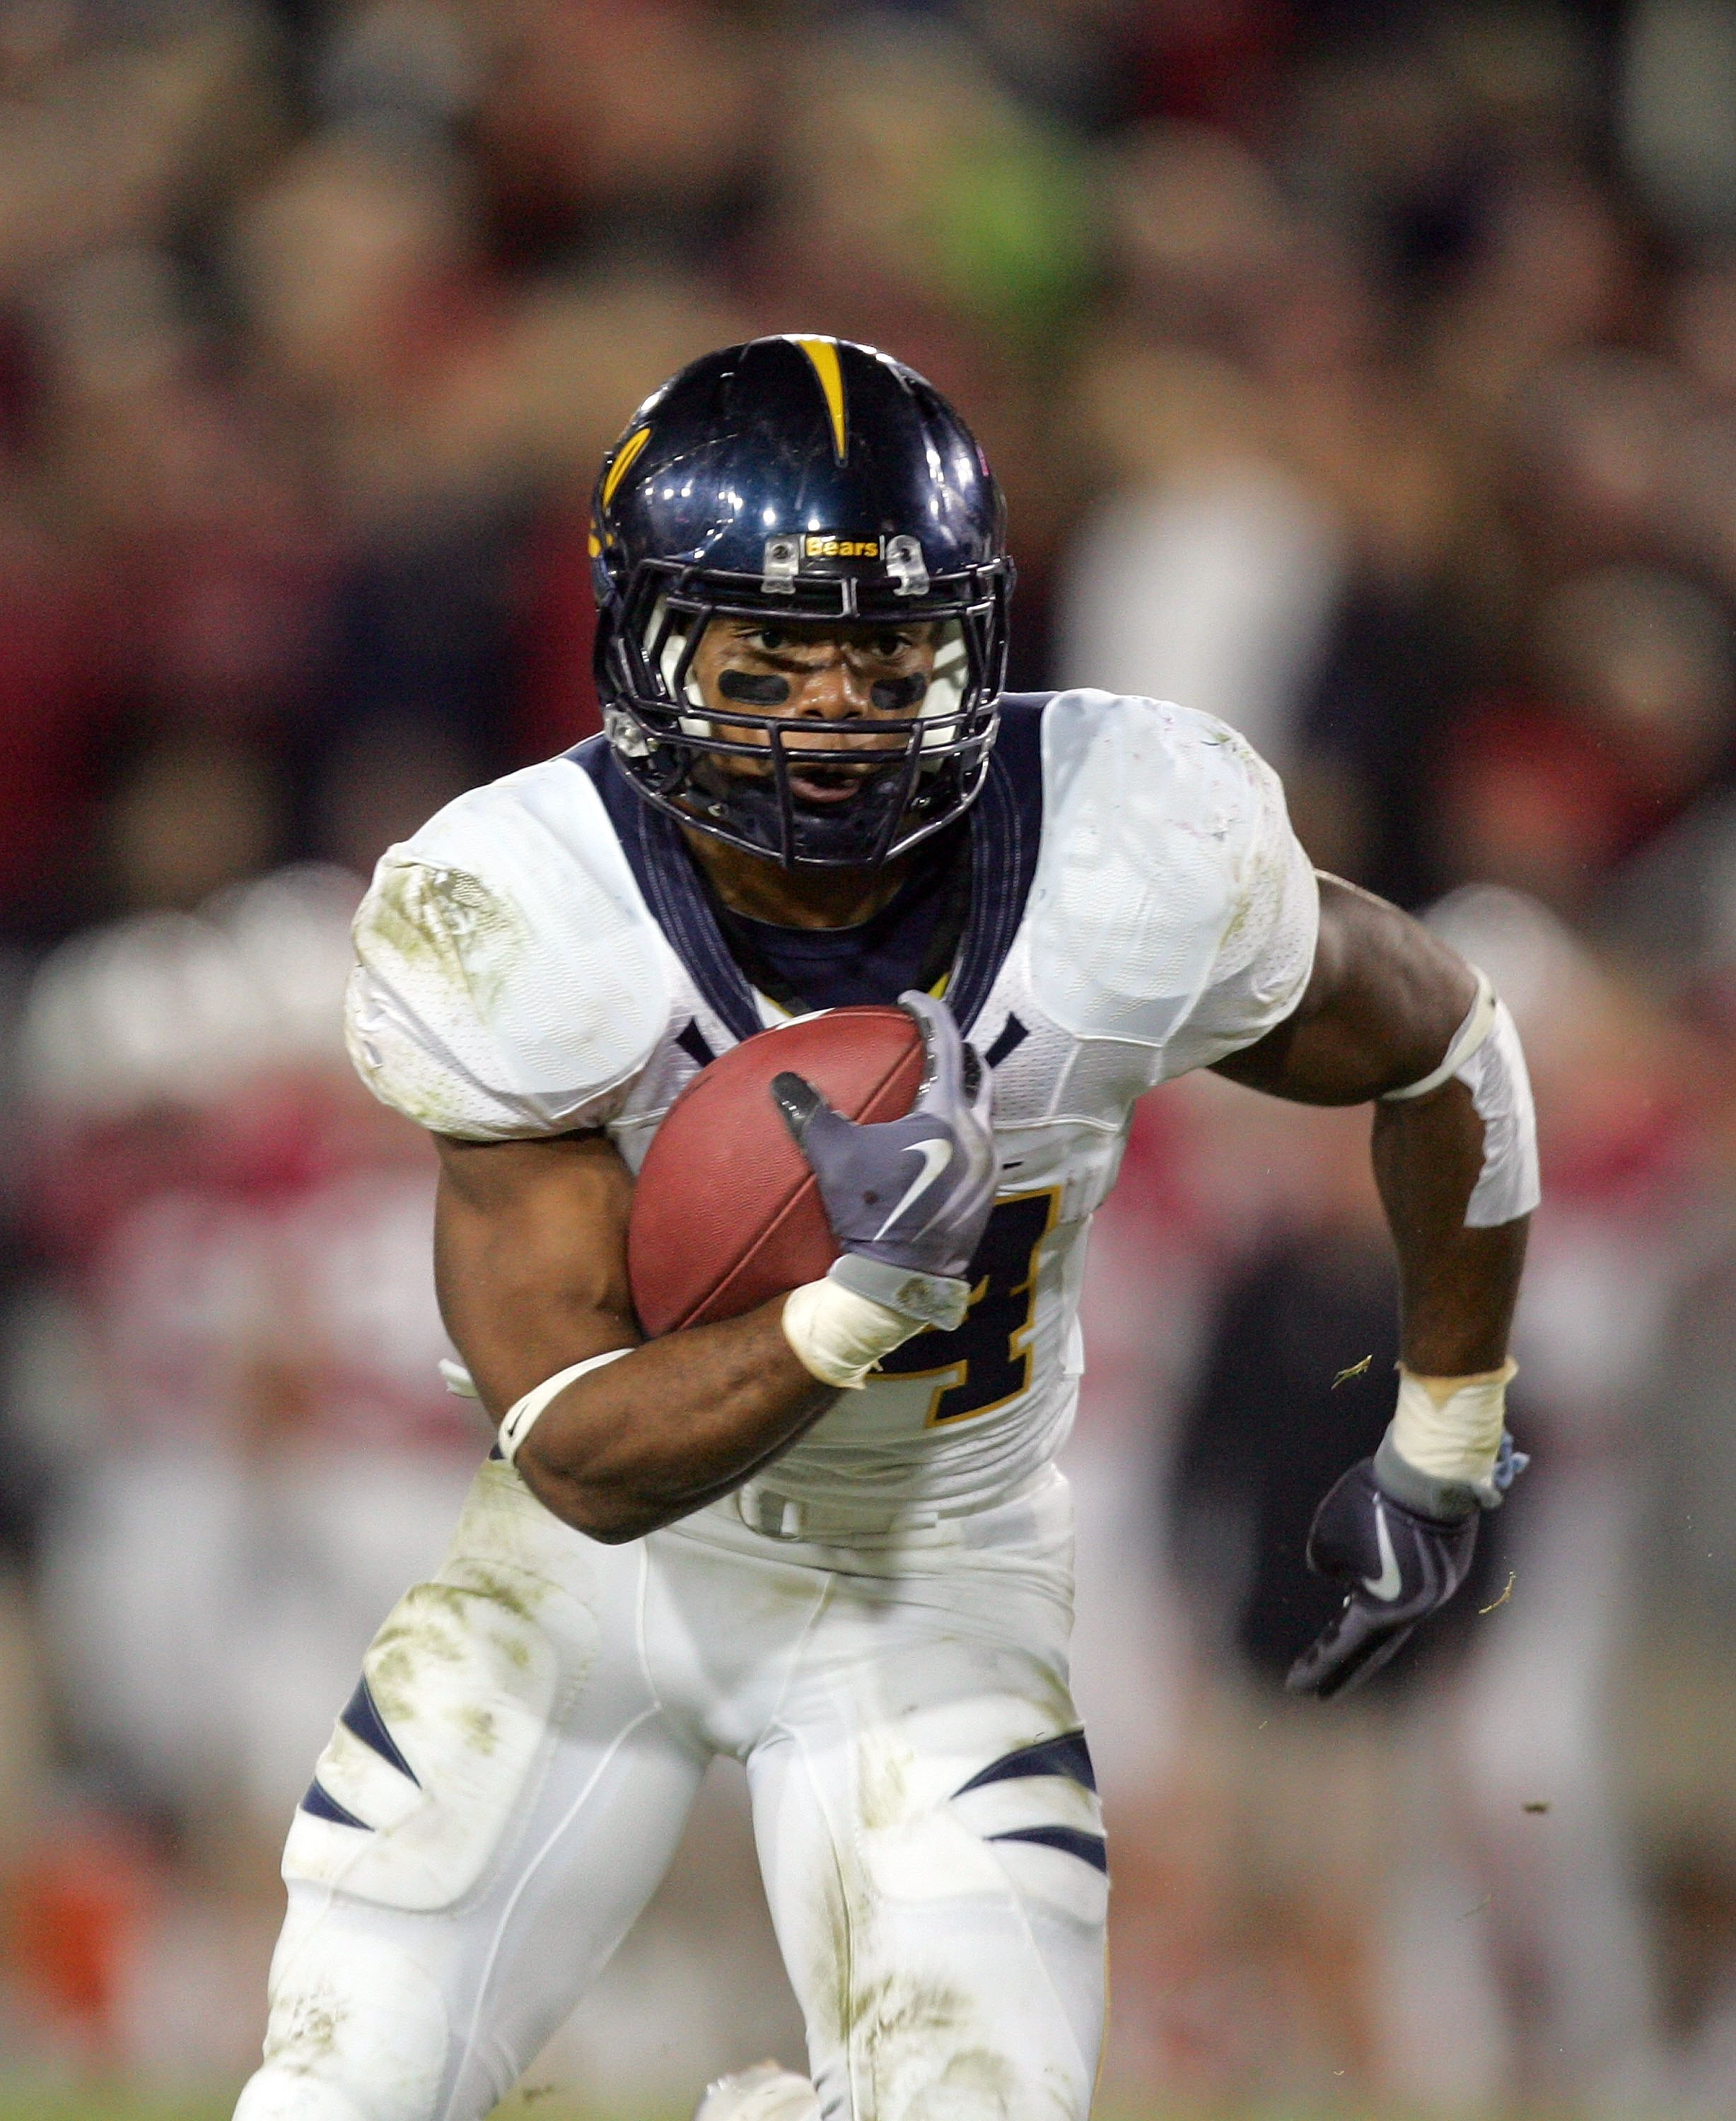 PALO ALTO, CA - NOVEMBER 21:  Shane Vereen #34 of the California Bears runs with the ball during their game against the Stanford Cardinal at Stanford Stadium on November 21, 2009 in Palo Alto, California.  (Photo by Ezra Shaw/Getty Images)